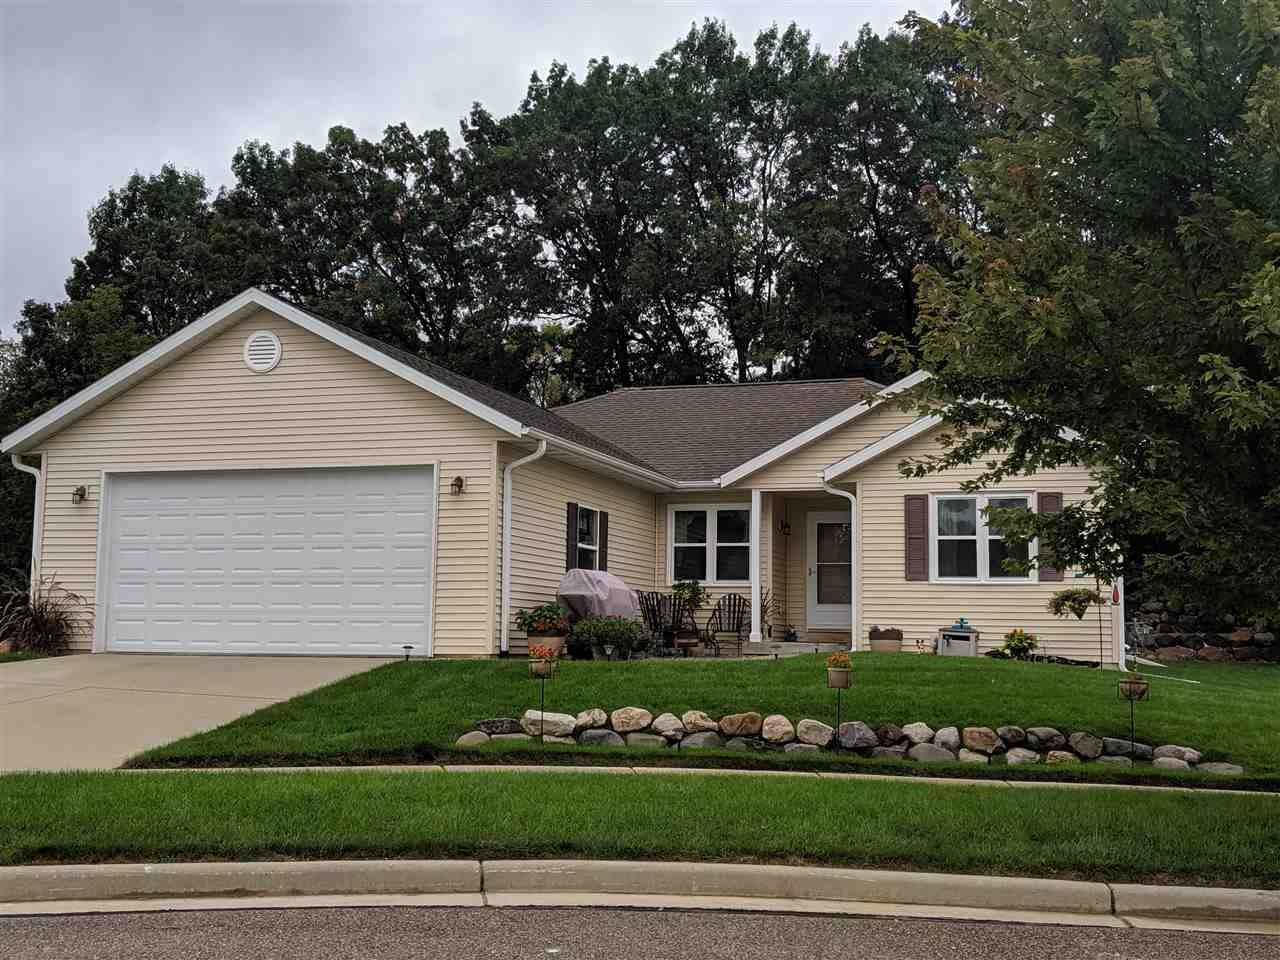 652 Lakeview Ave, Merrimac, WI 53561 - #: 1876346